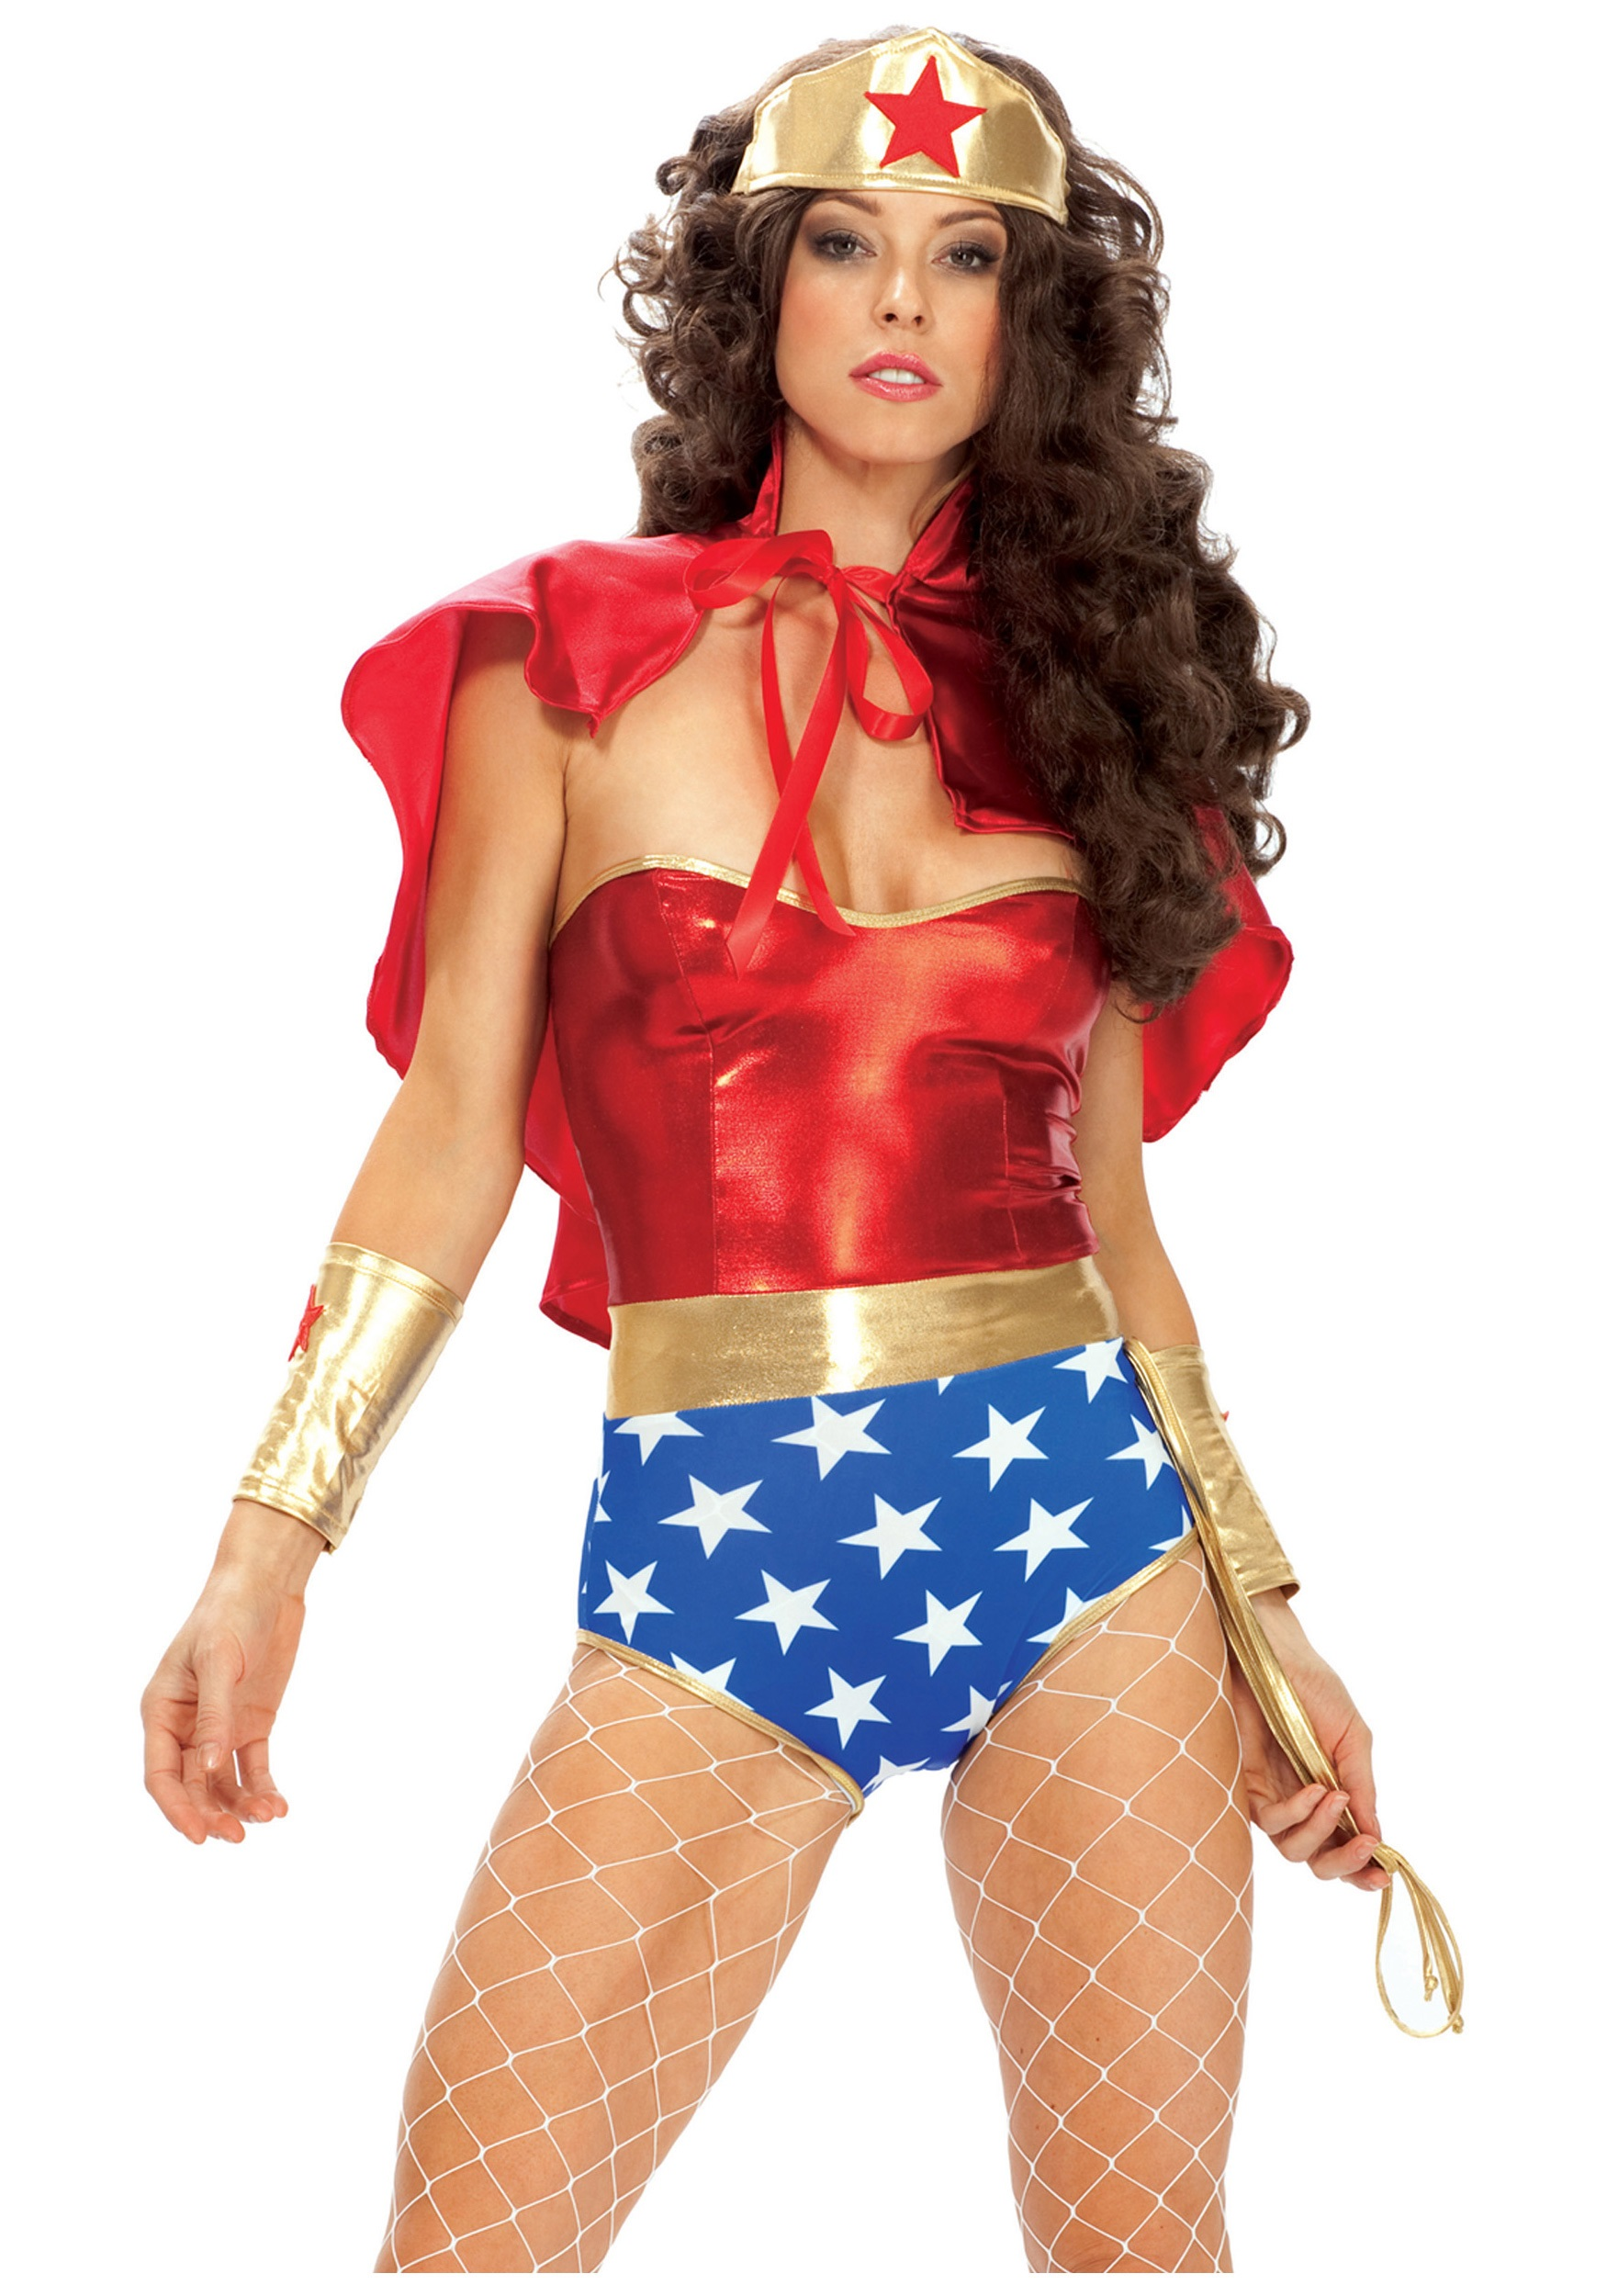 Wonder Seductress Superhero Costume  sc 1 st  Halloween Costumes & Wonder Seductress Superhero Costume - Halloween Costumes